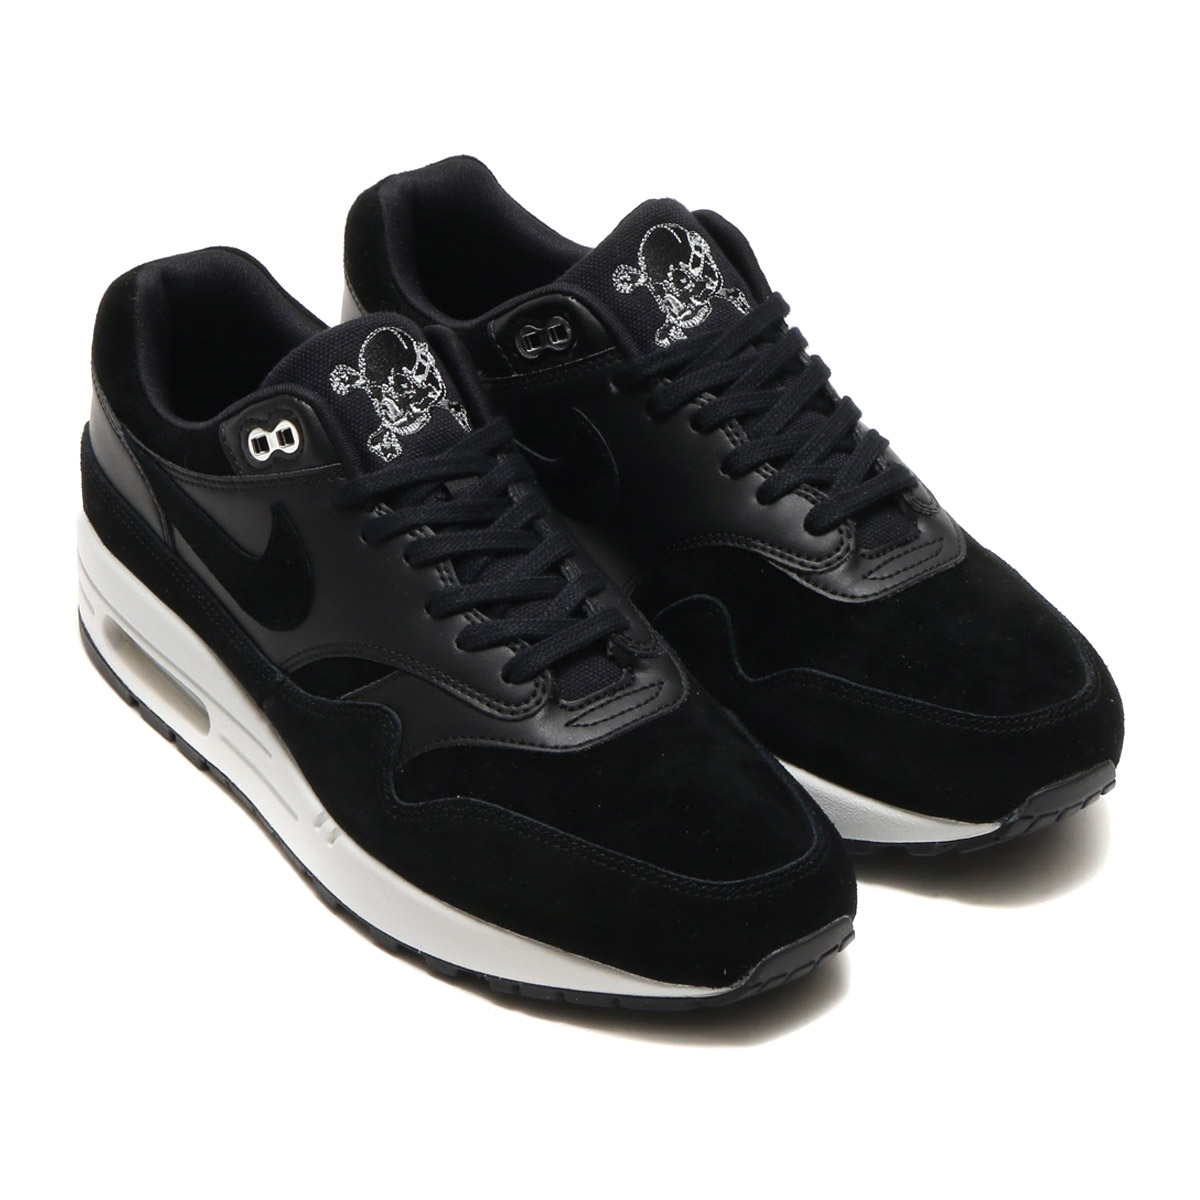 size 40 cd152 e5978 The recreation which let an edge work by a bold color with the feeling  premium as for classic Air Max 1. Black suede and leather shine in mid sole  of the ...